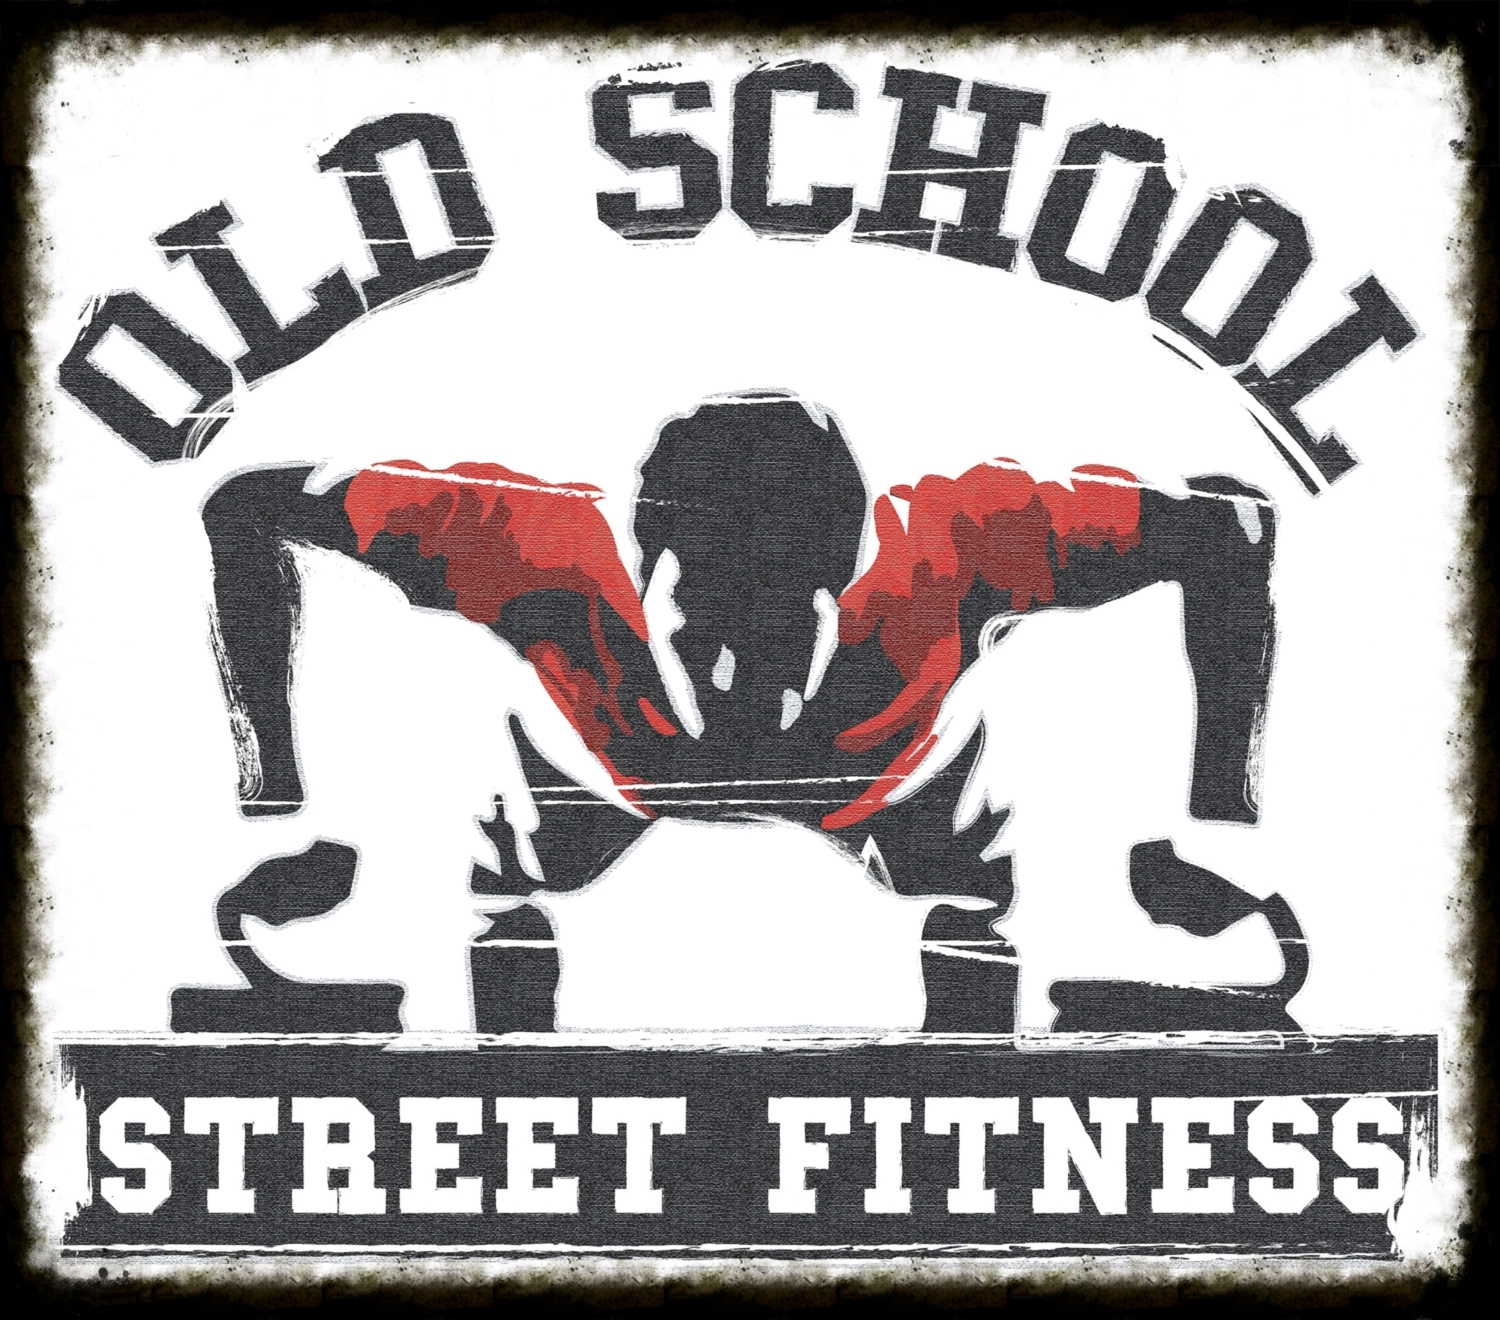 Old School Street Fitness